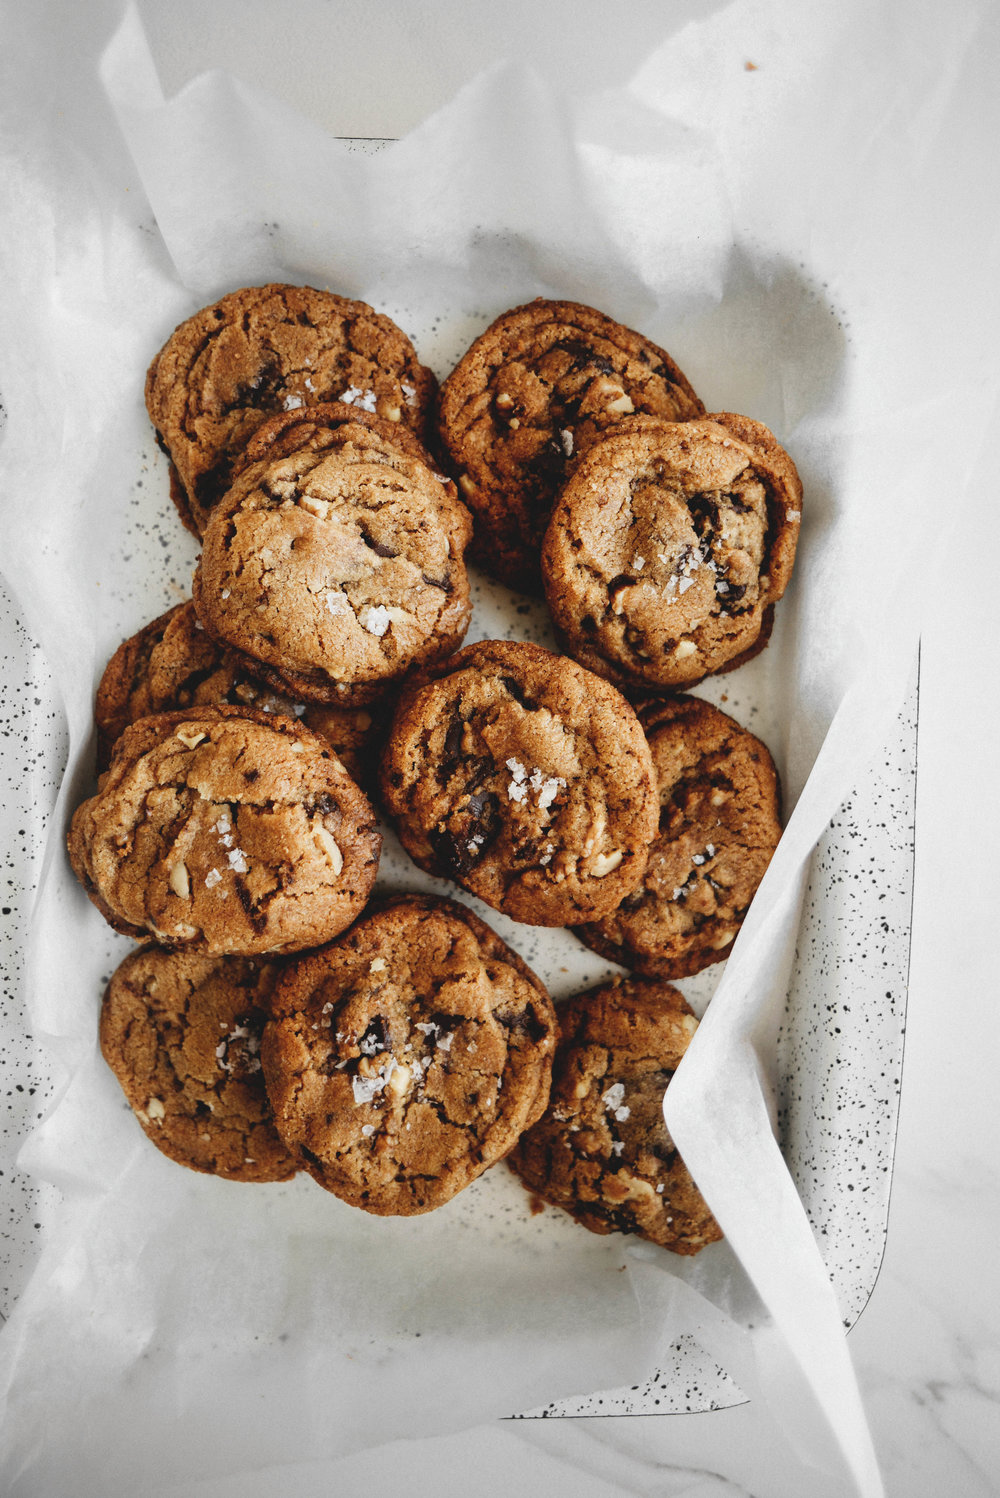 Vegan-Chocolate-Chip-Walnut-Cookies-2.jpg